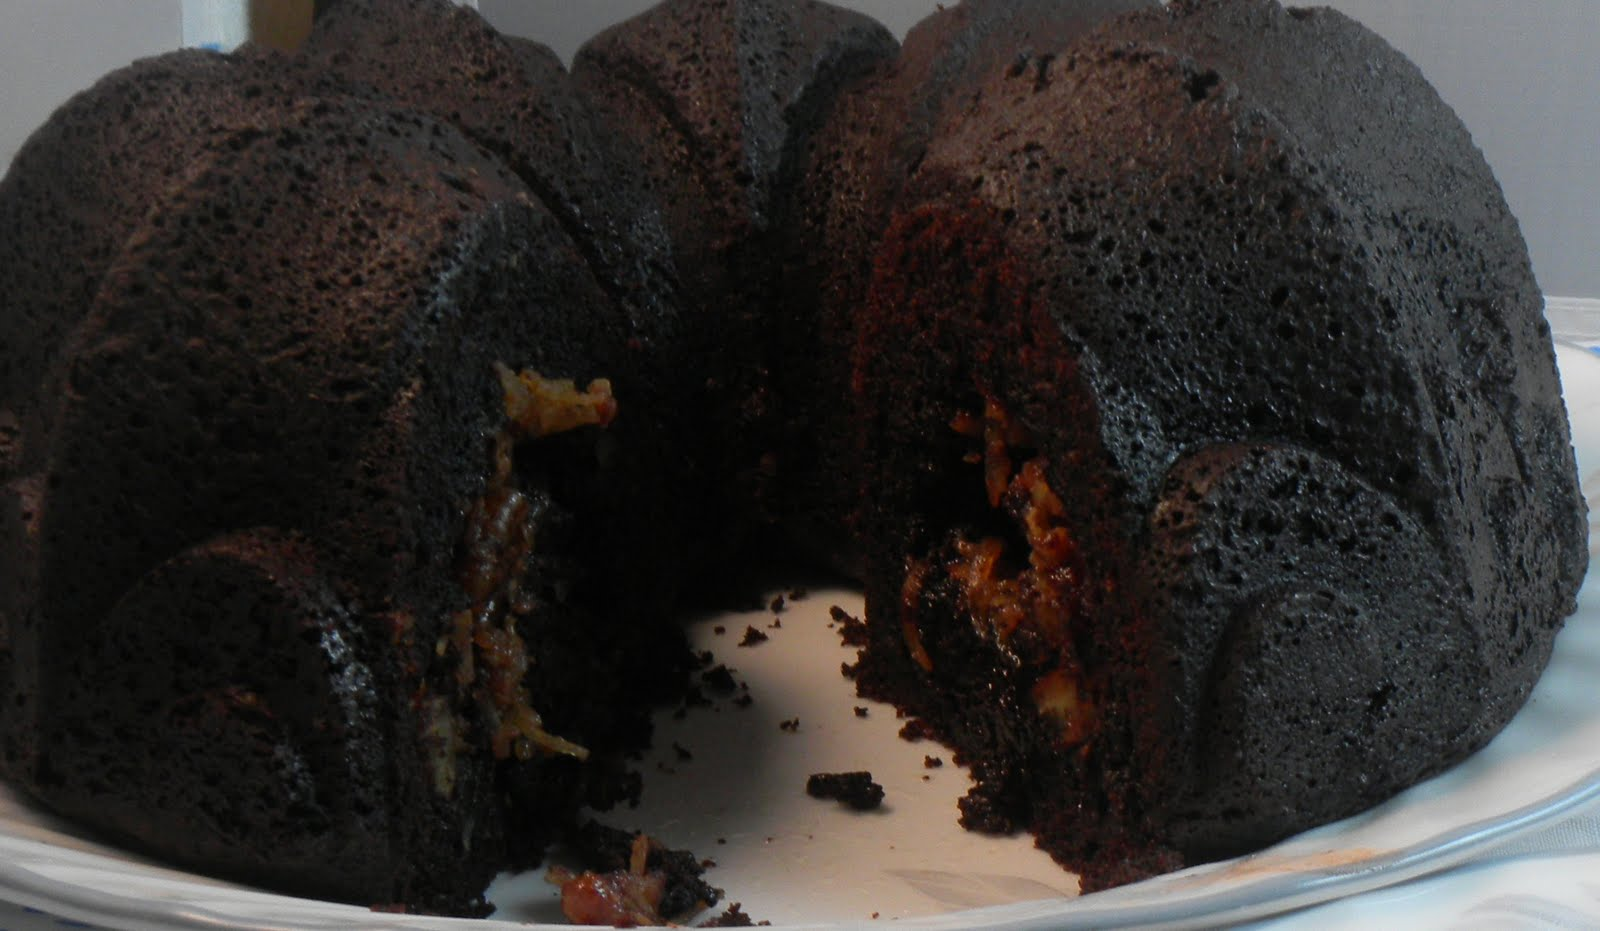 The Twisted Kitchen: Chocolate Bundt Cake with Pecan Caramel Filling